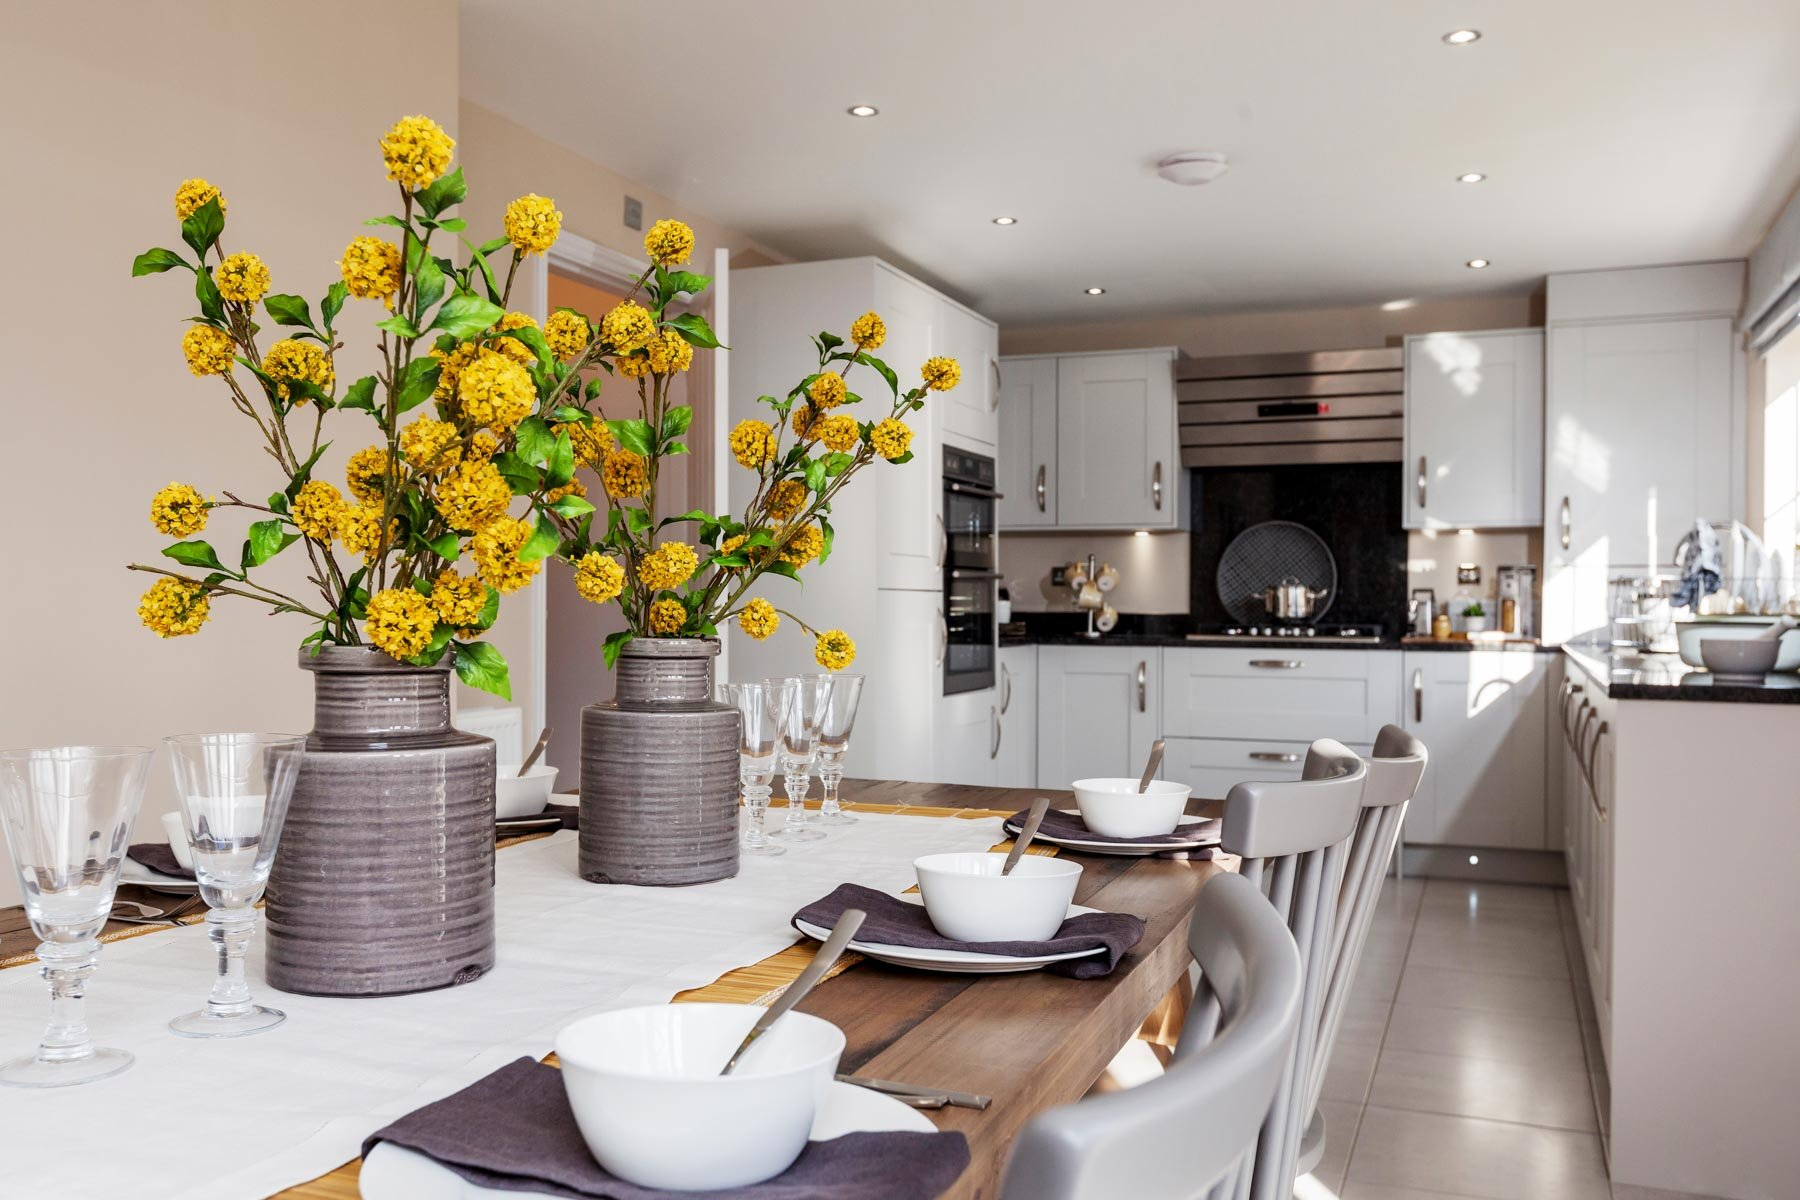 Taylor Wimpey Exeter - Cranbrook - Shelford example kitchen